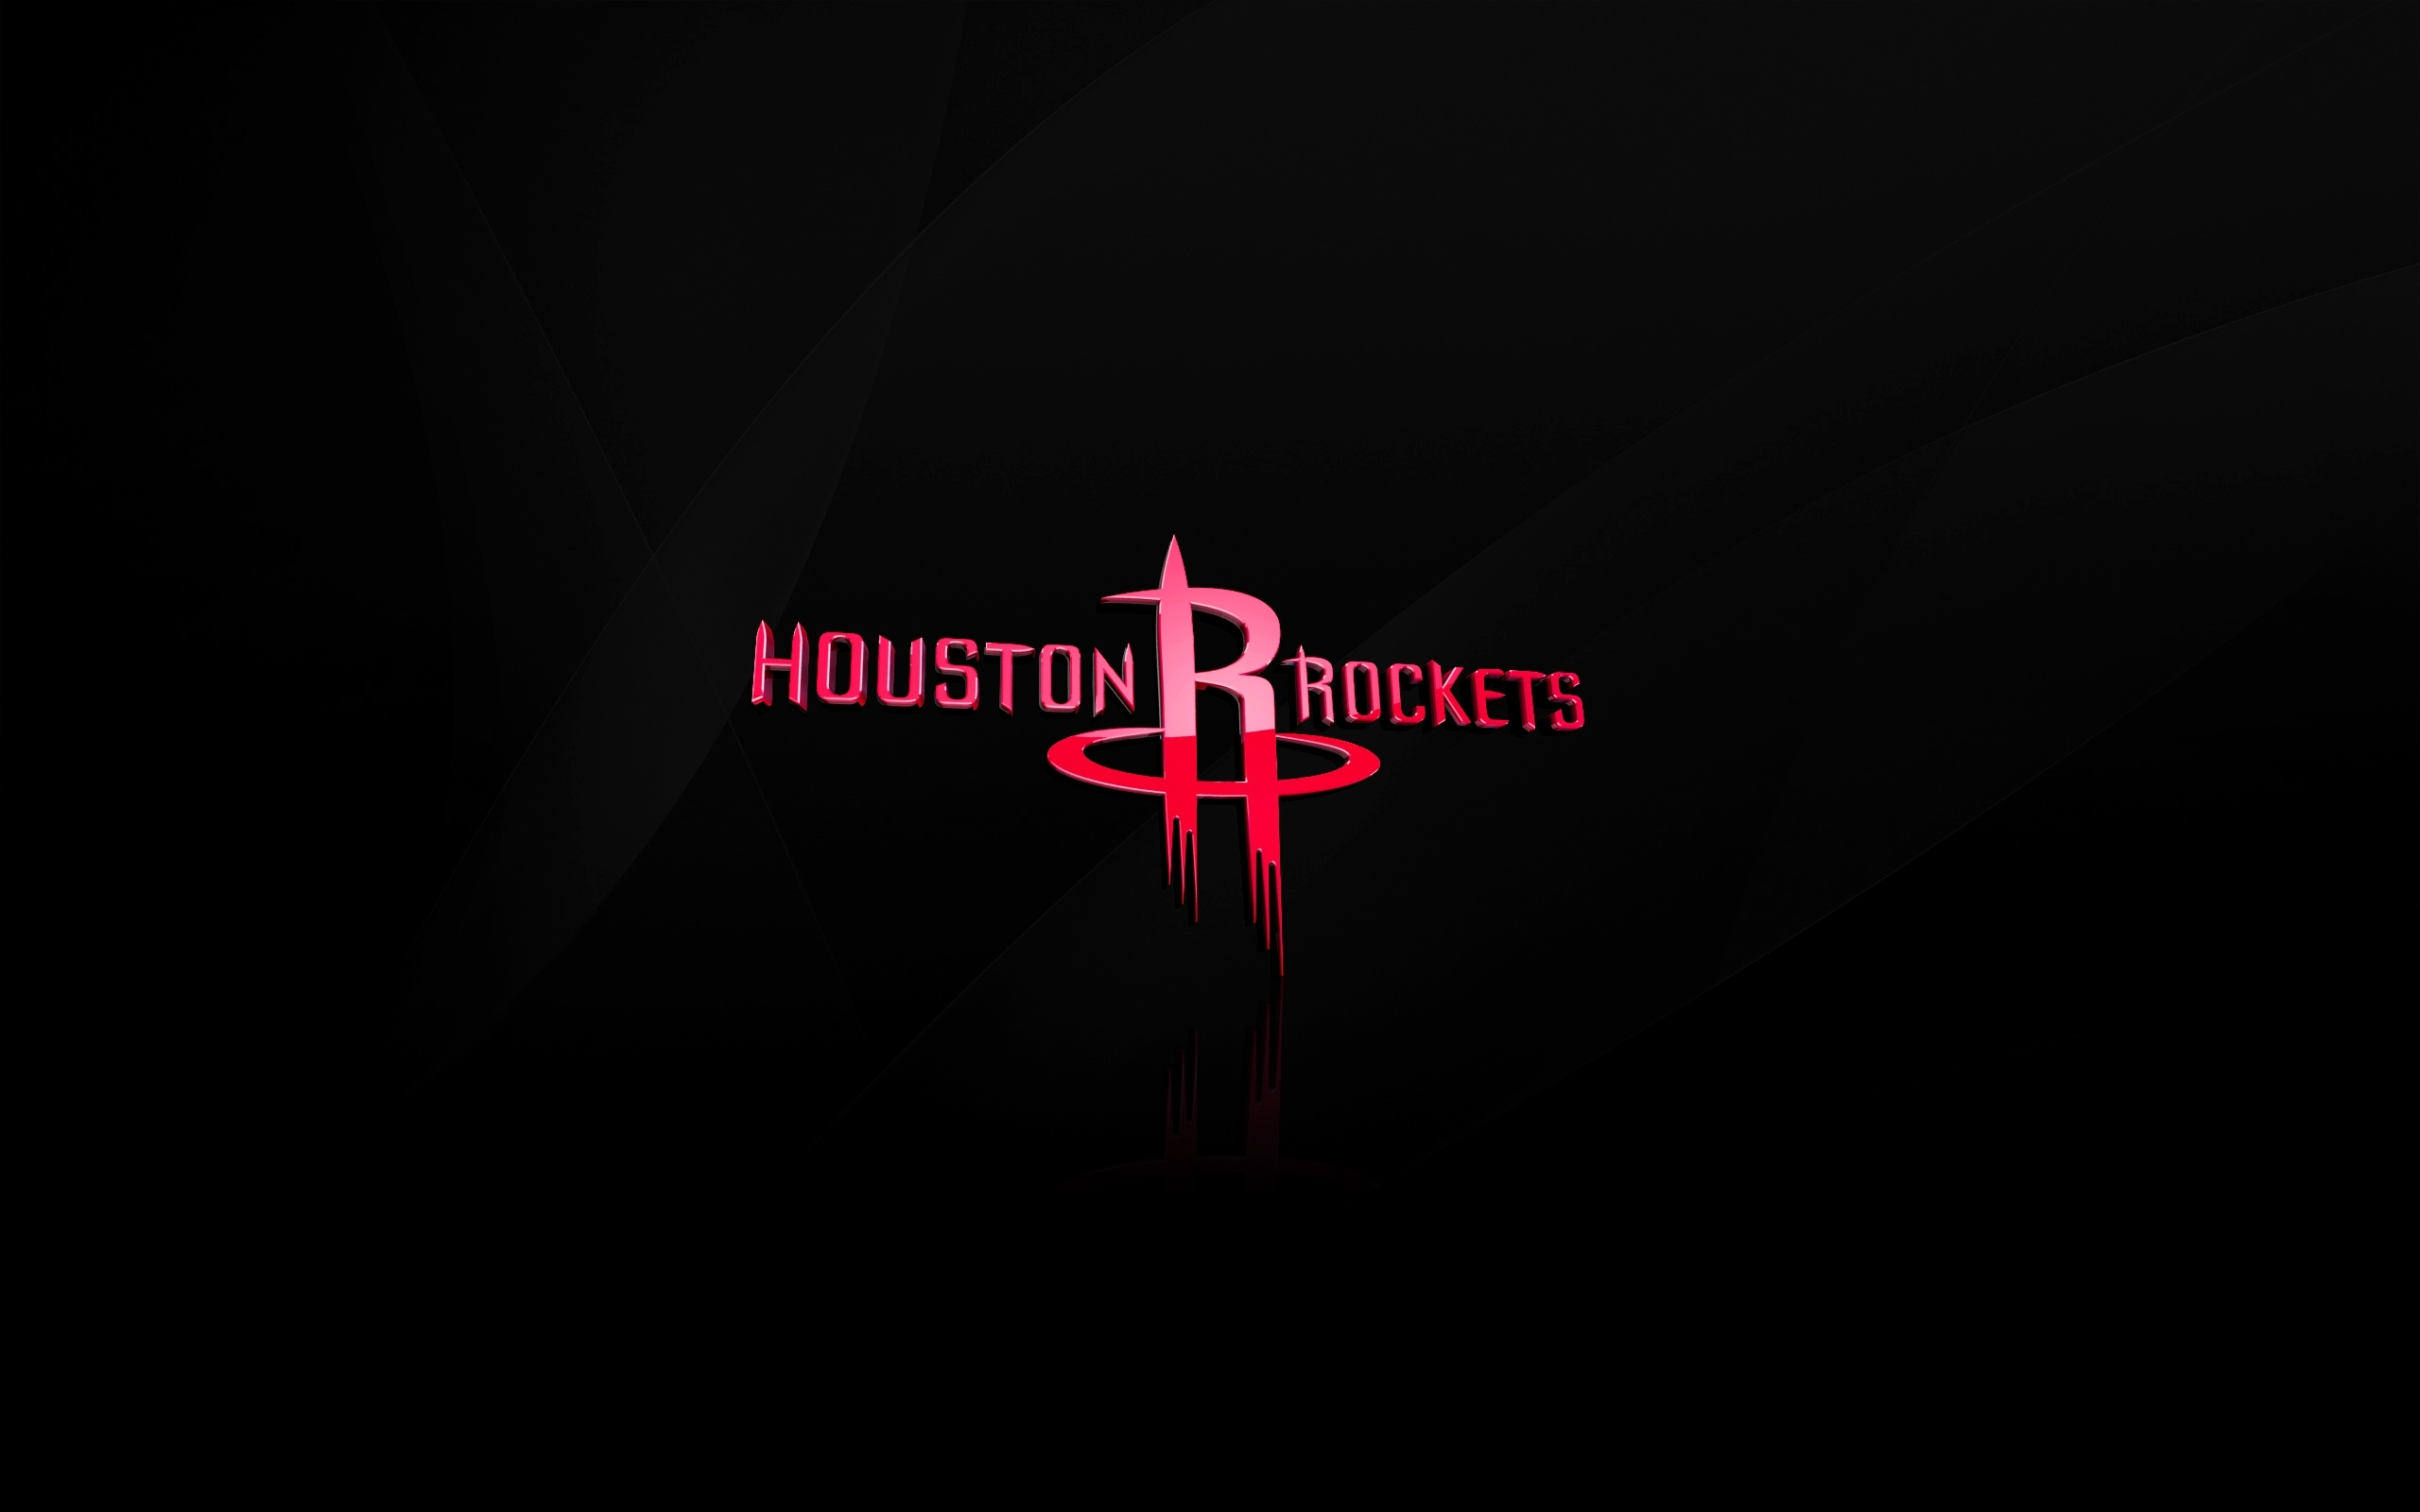 Houston Rockets Wallpaper